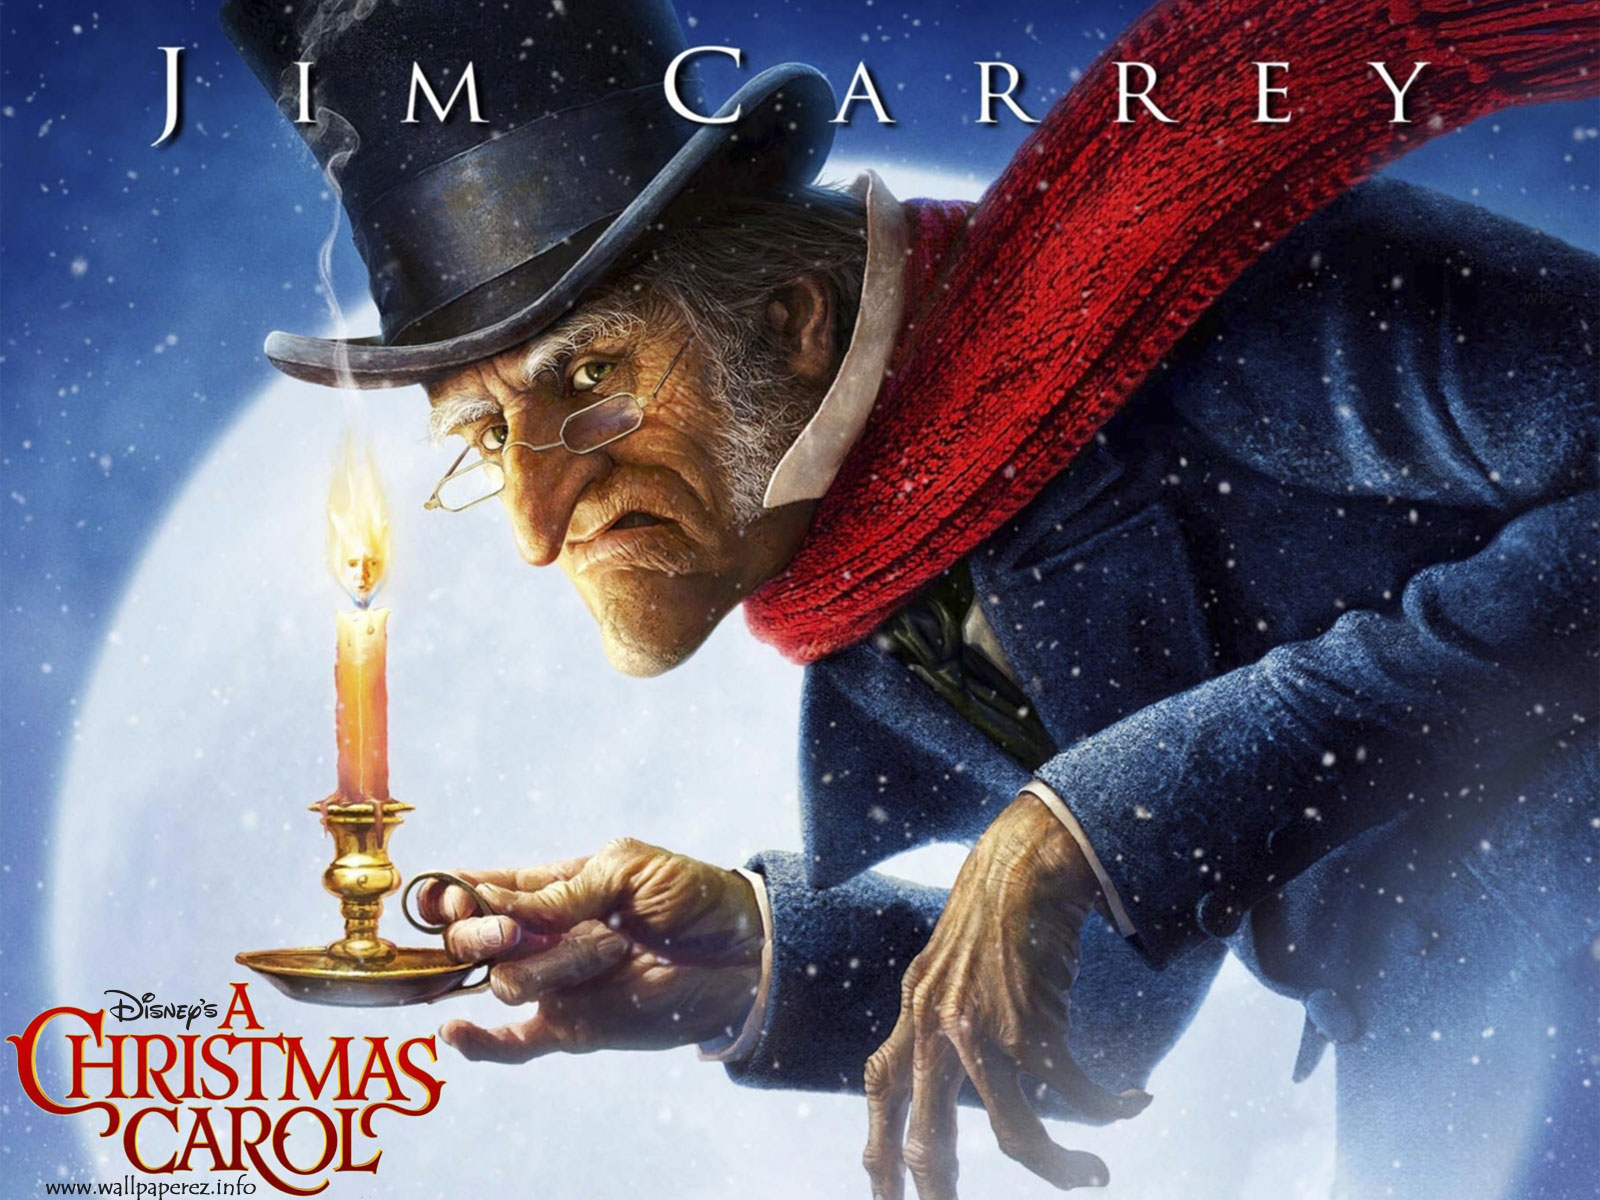 A Christmas Carol 2009 Wallpaper And Background Image 1600x1200 Id 86308 Wallpaper Abyss